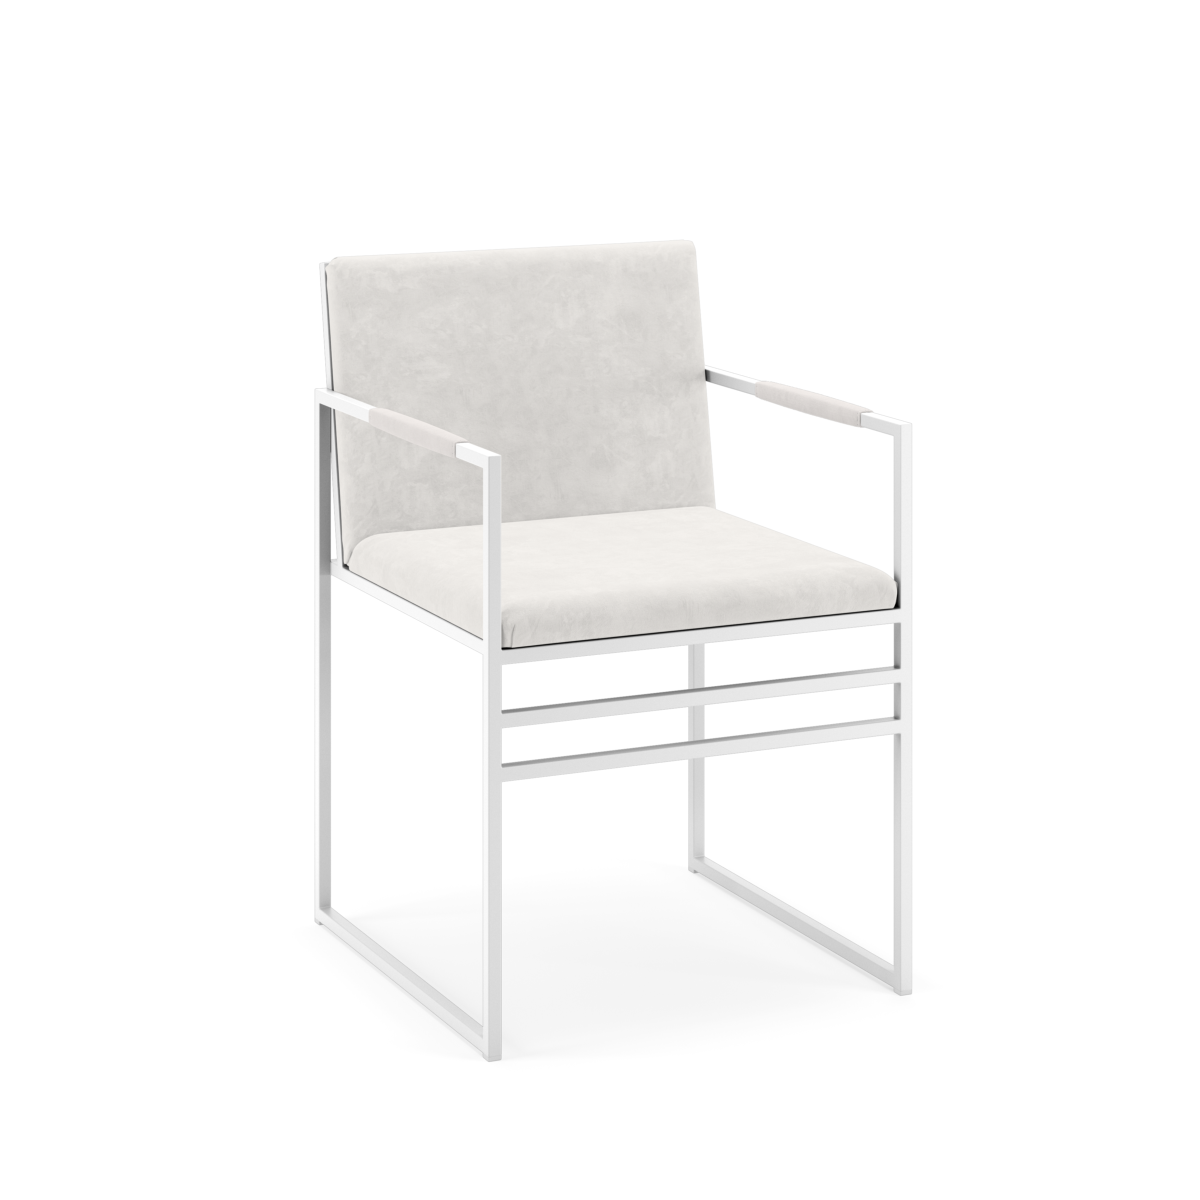 Sella chair by Crea®